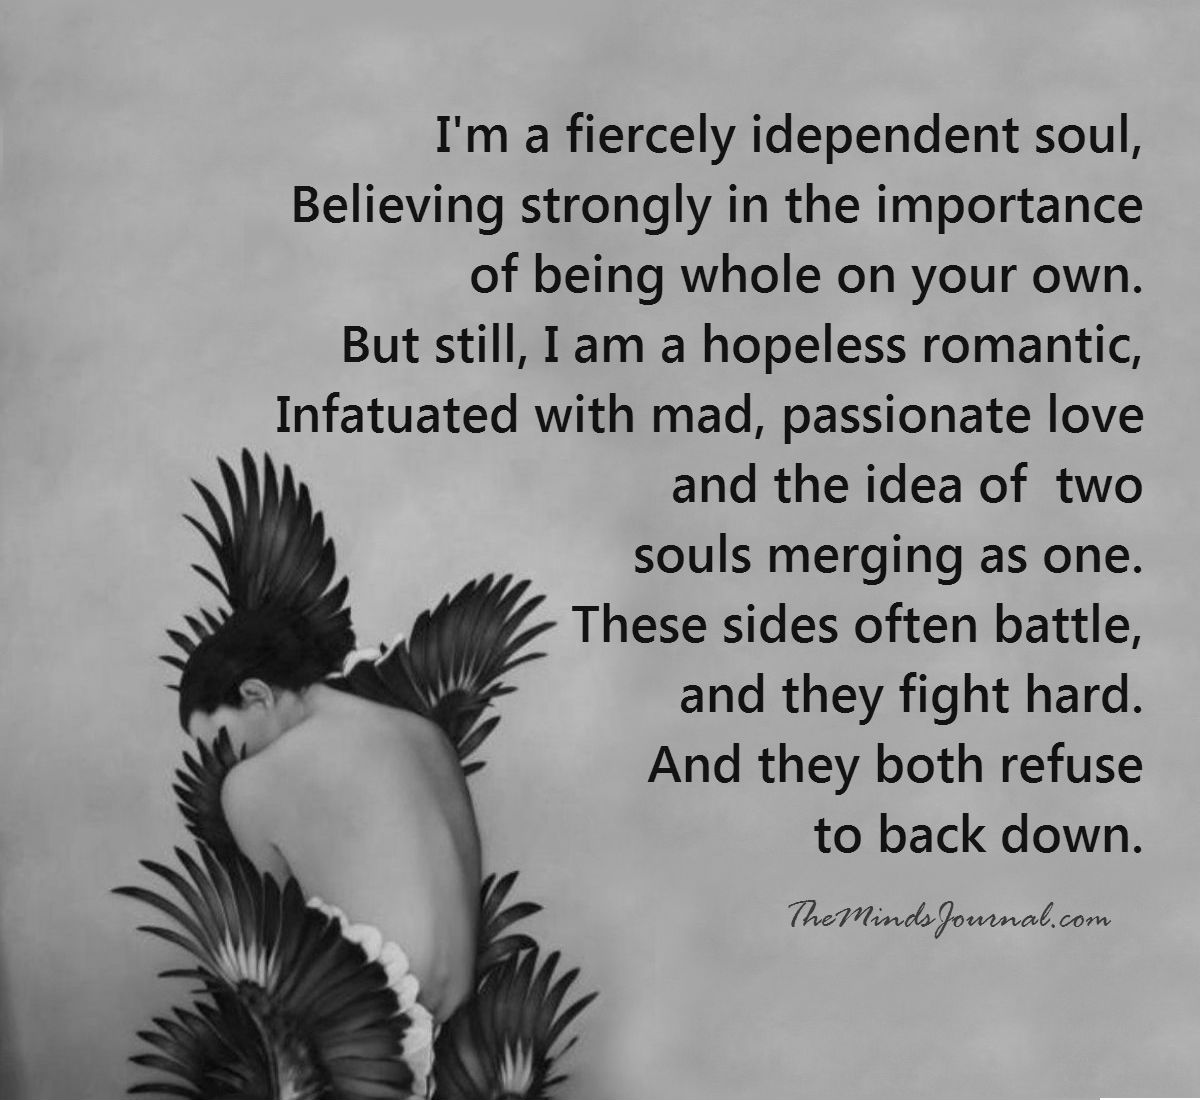 I'm a fiercely independent Soul